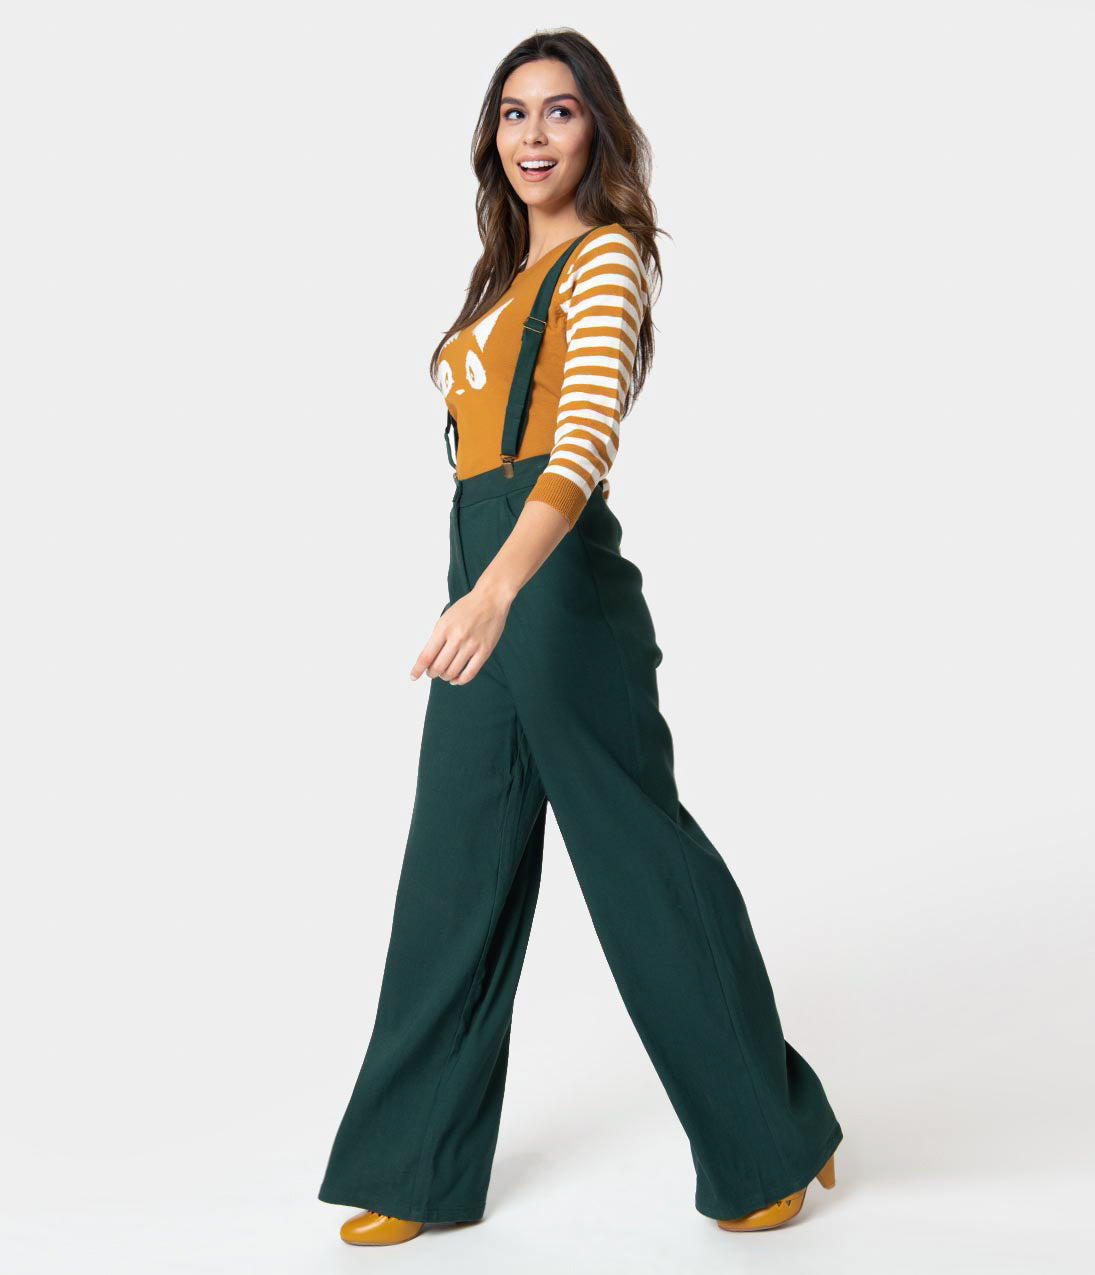 Vintage High Waisted Trousers, Sailor Pants, Jeans Collectif 1940S Style Emerald Green High Waist Glinda Suspender Pants $58.00 AT vintagedancer.com